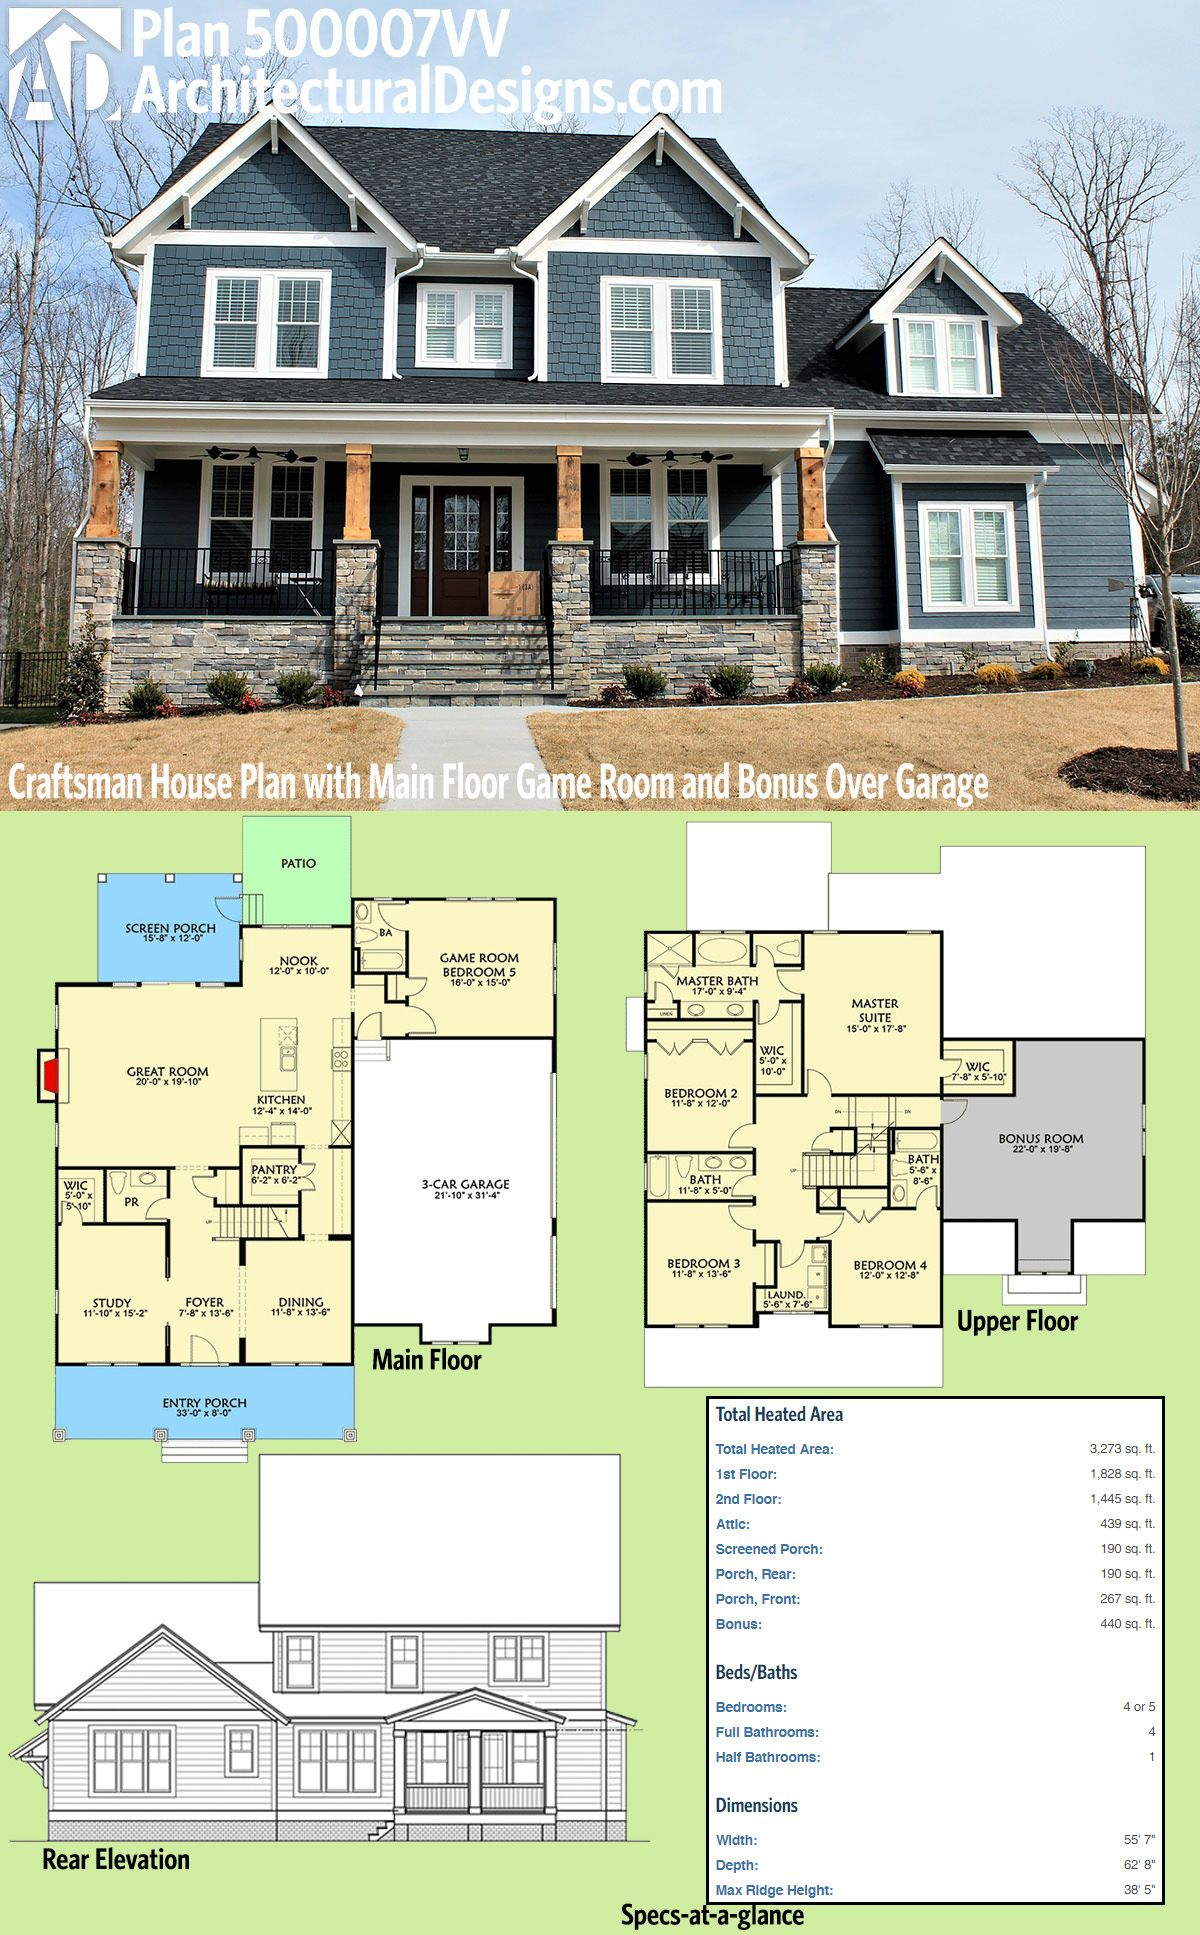 59931d61f4510d4bca644262d7308cc8 Top Result 52 Elegant House Plans with Finished Basement